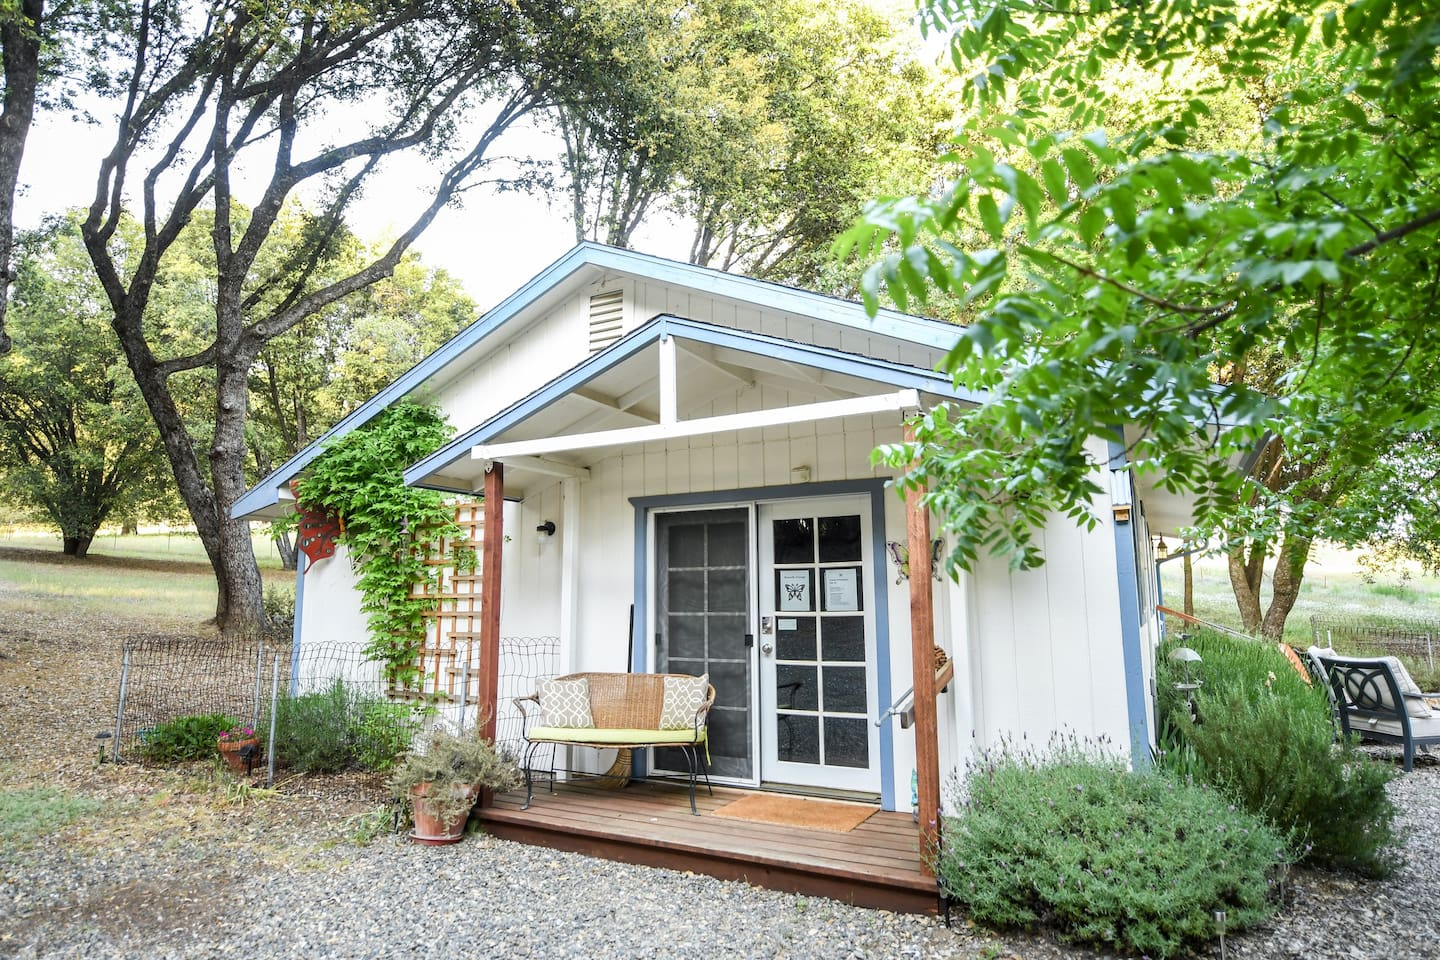 Butterfly Cottage is located on 10+ serene, secluded, rural acres. You are only about 1 hours drive to Yosemite. What a great place to relax, have a romantic get-away, or a base camp for your Yosemite adventure.